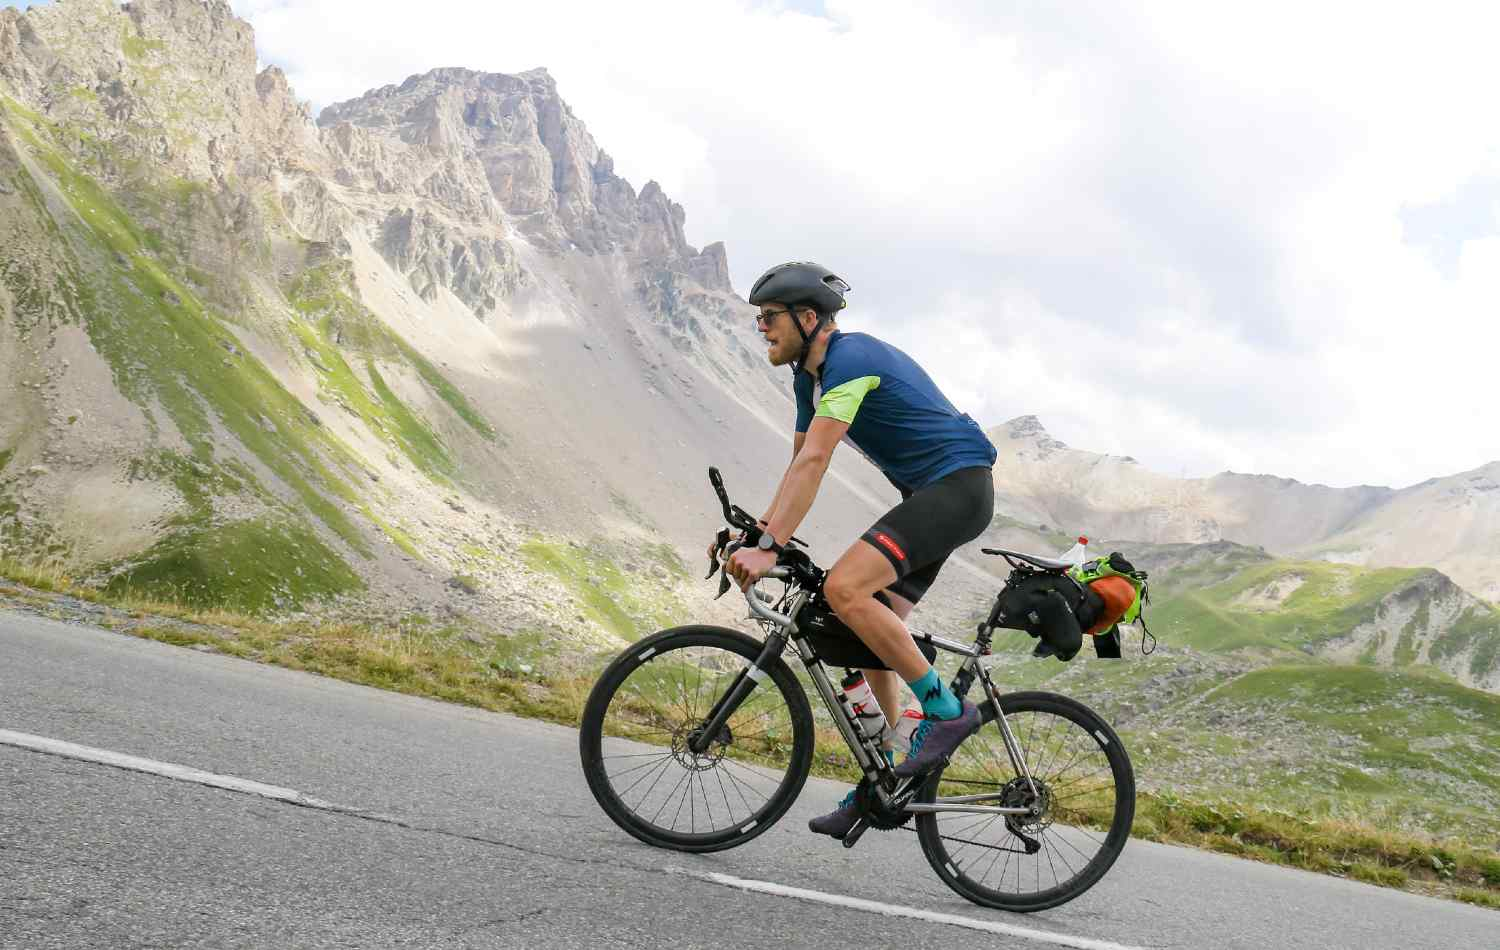 A man riding a bike with a full bikepacking kit through a hill in the mountain